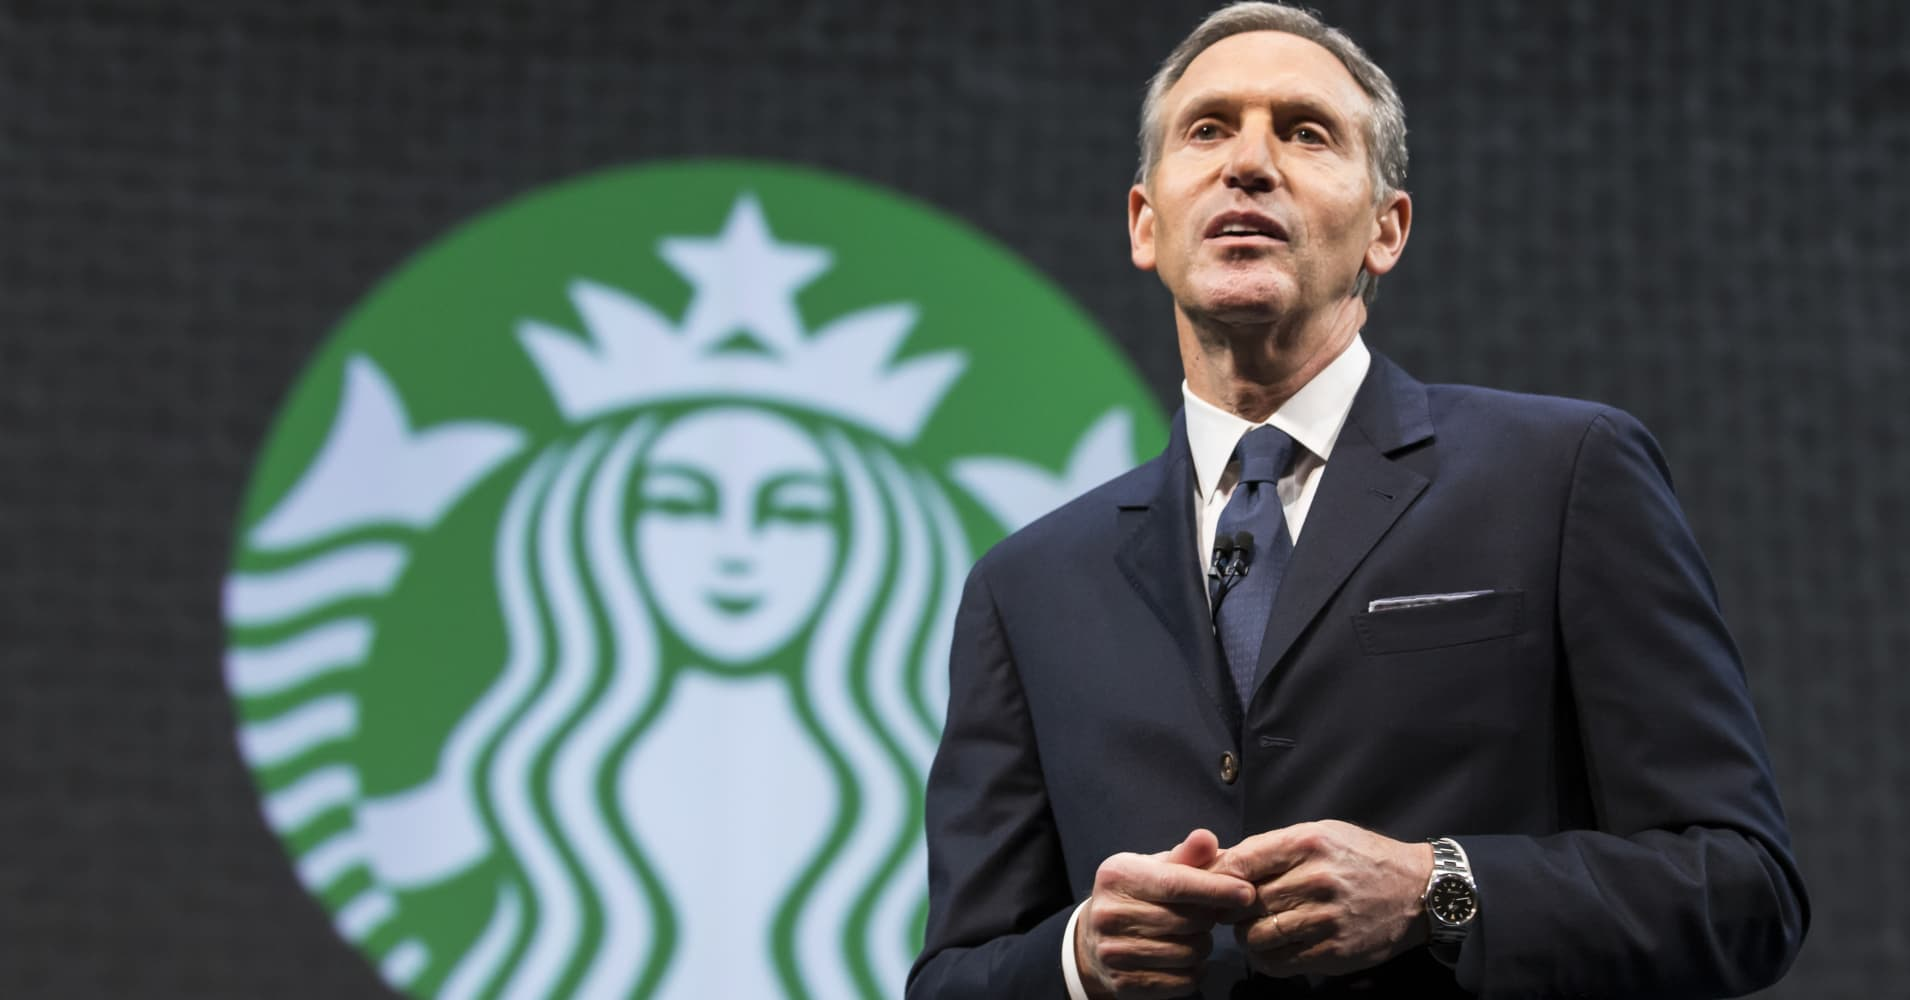 Outgoing Starbucks CEO Howard Schultz: Kevin Johnson better prepared to be CEO